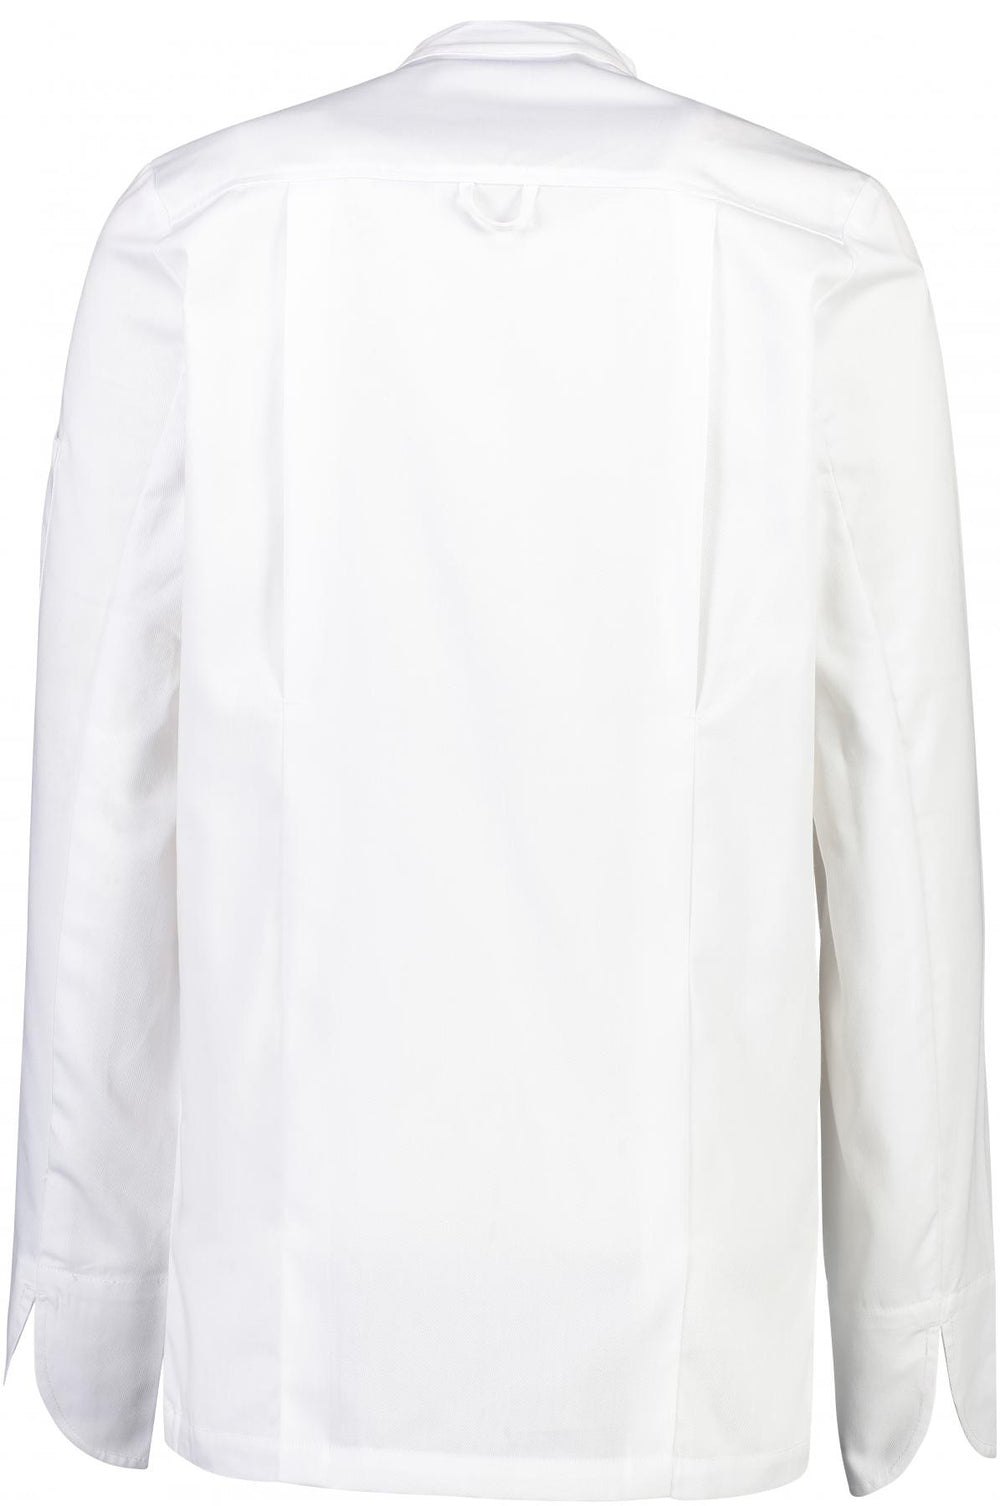 Club II Chefs Jacket Long Sleeve